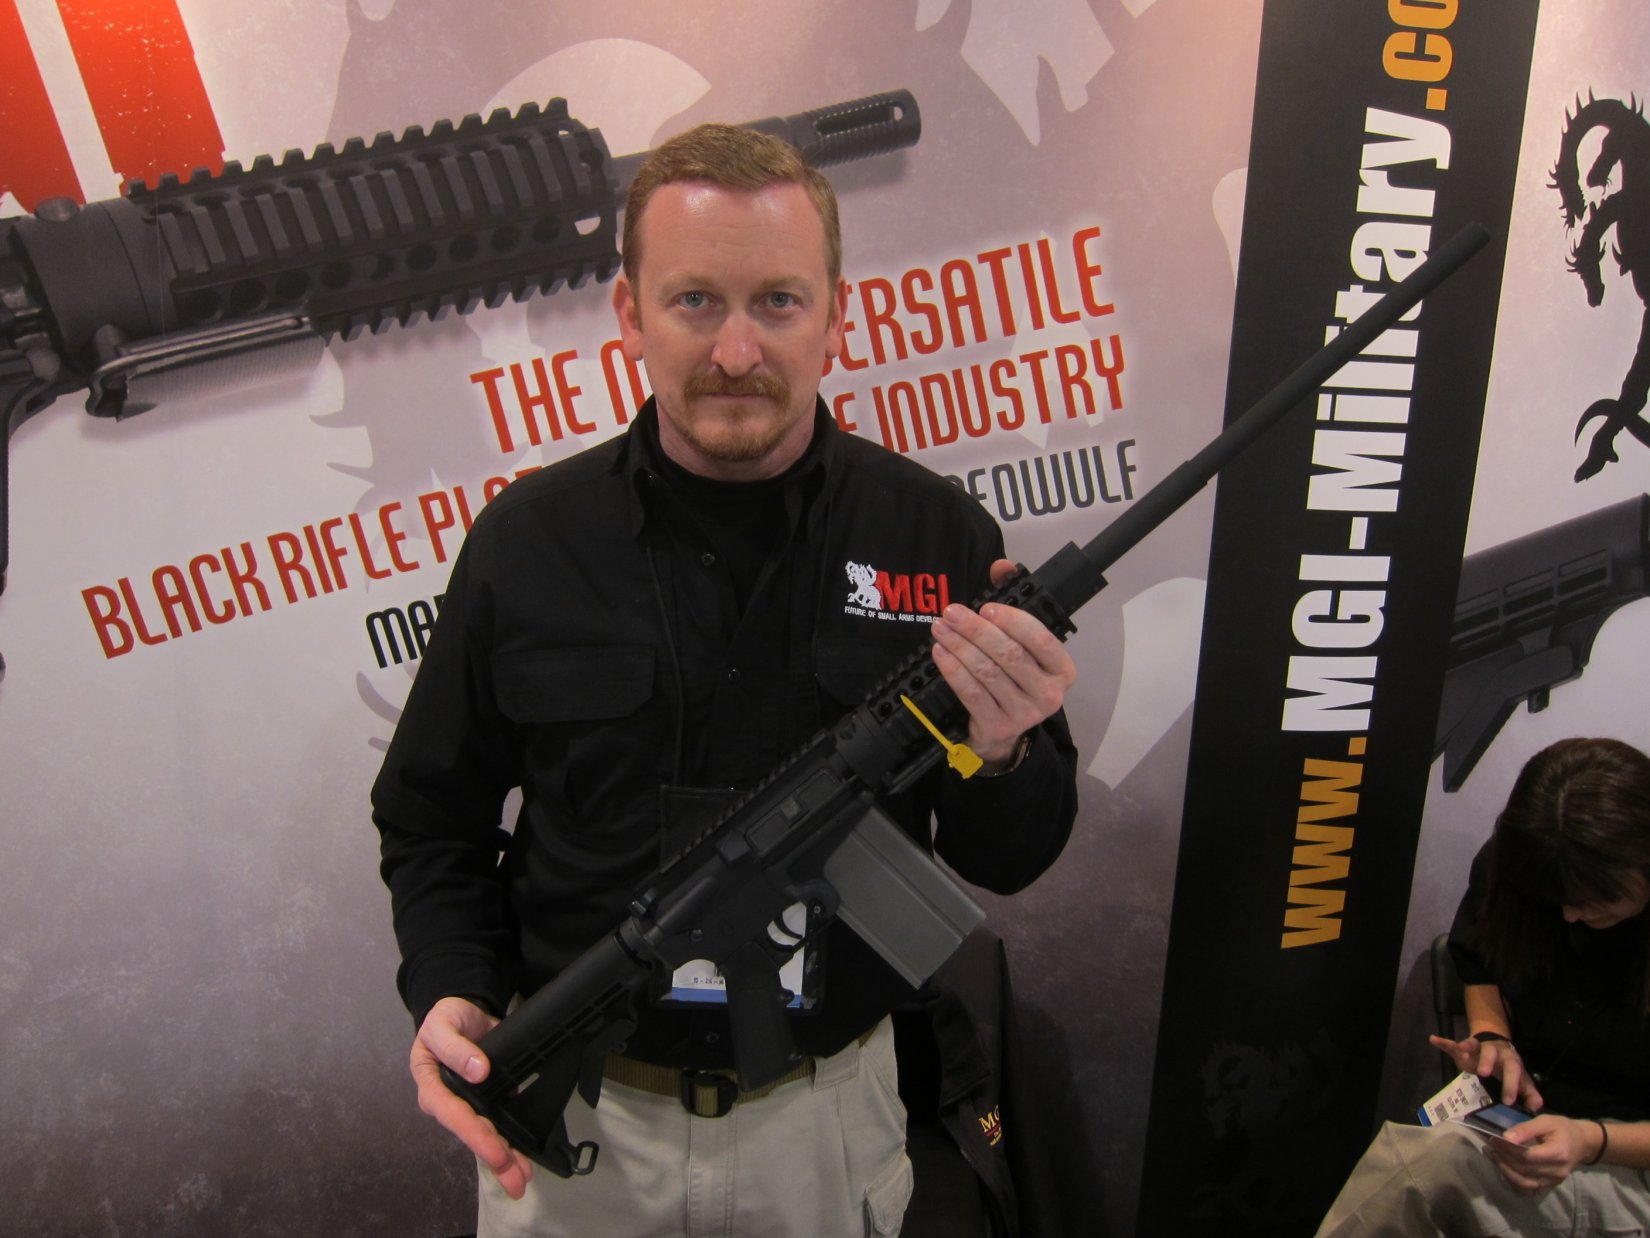 MGI Hydra AR 7.62mm Magazine SHOT Show 2012 DefenseReview.com DR 4 MGI Hydra Modular 7.62mm NATO/.308 Win. Tactical AR (AR 15) Rifle/Carbine/SBR (Short Barreled Rifle) Conversion Kit Prototype with Modular Lower Receiver, 7.62mm Magwell and Modified M14 Mag (Photos and Video!)